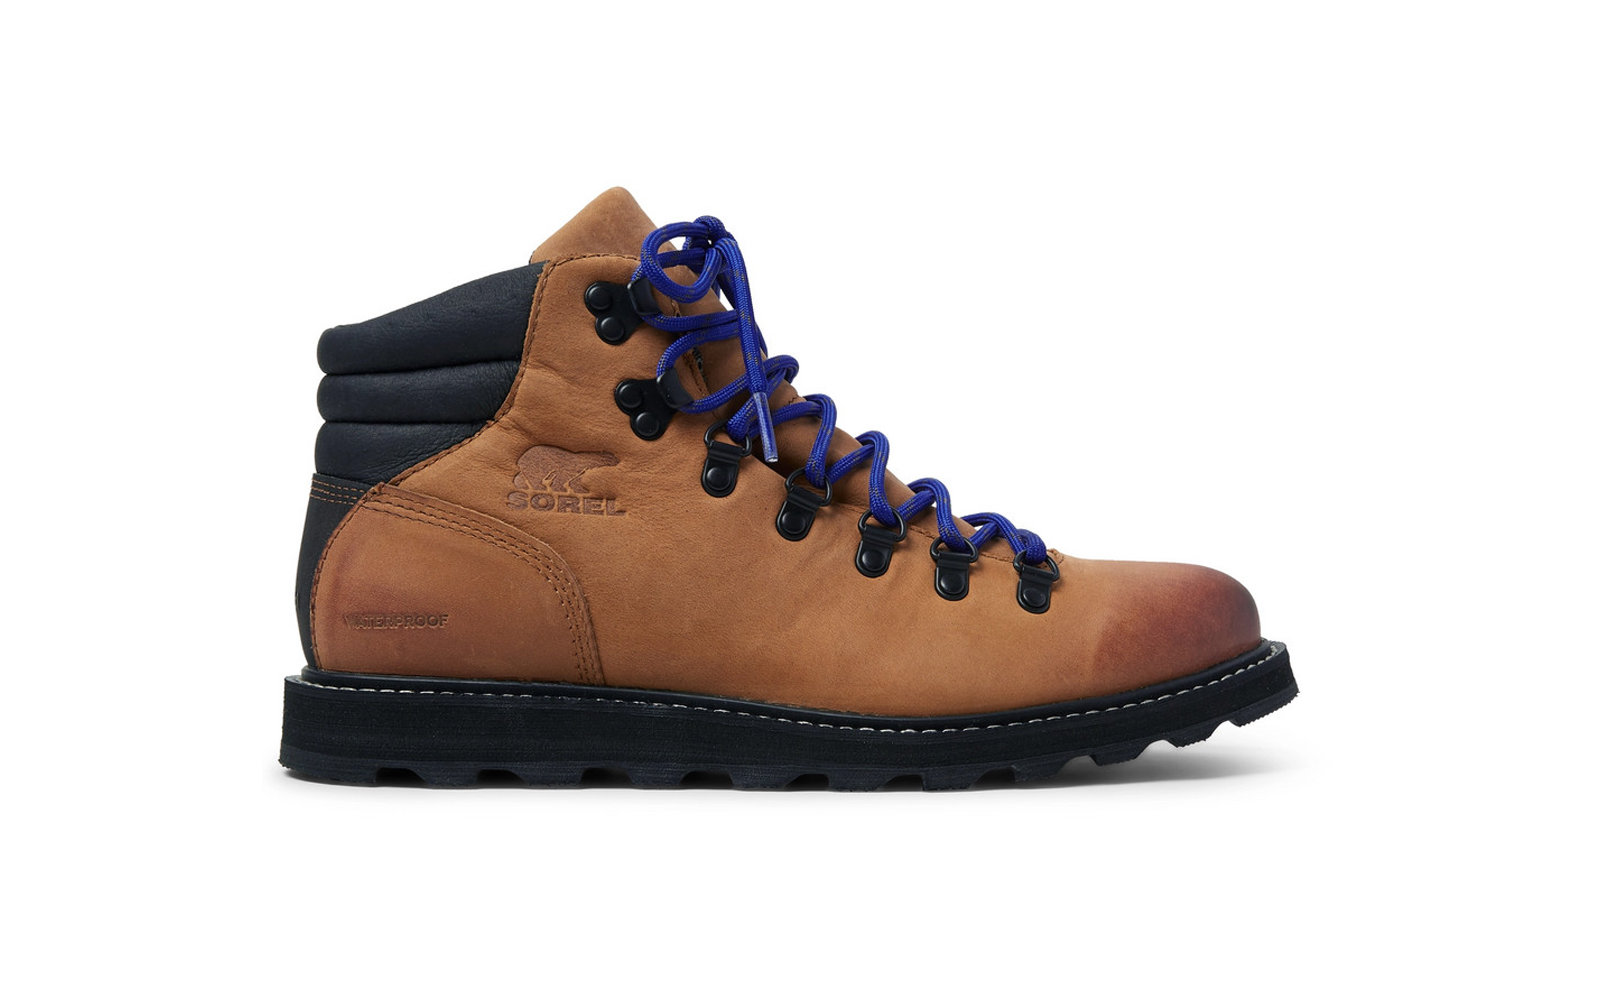 Best Hiking Boots: Sorel Madson Hiker Waterproof Leather And Rubber-Trimmed Nubuck Boots